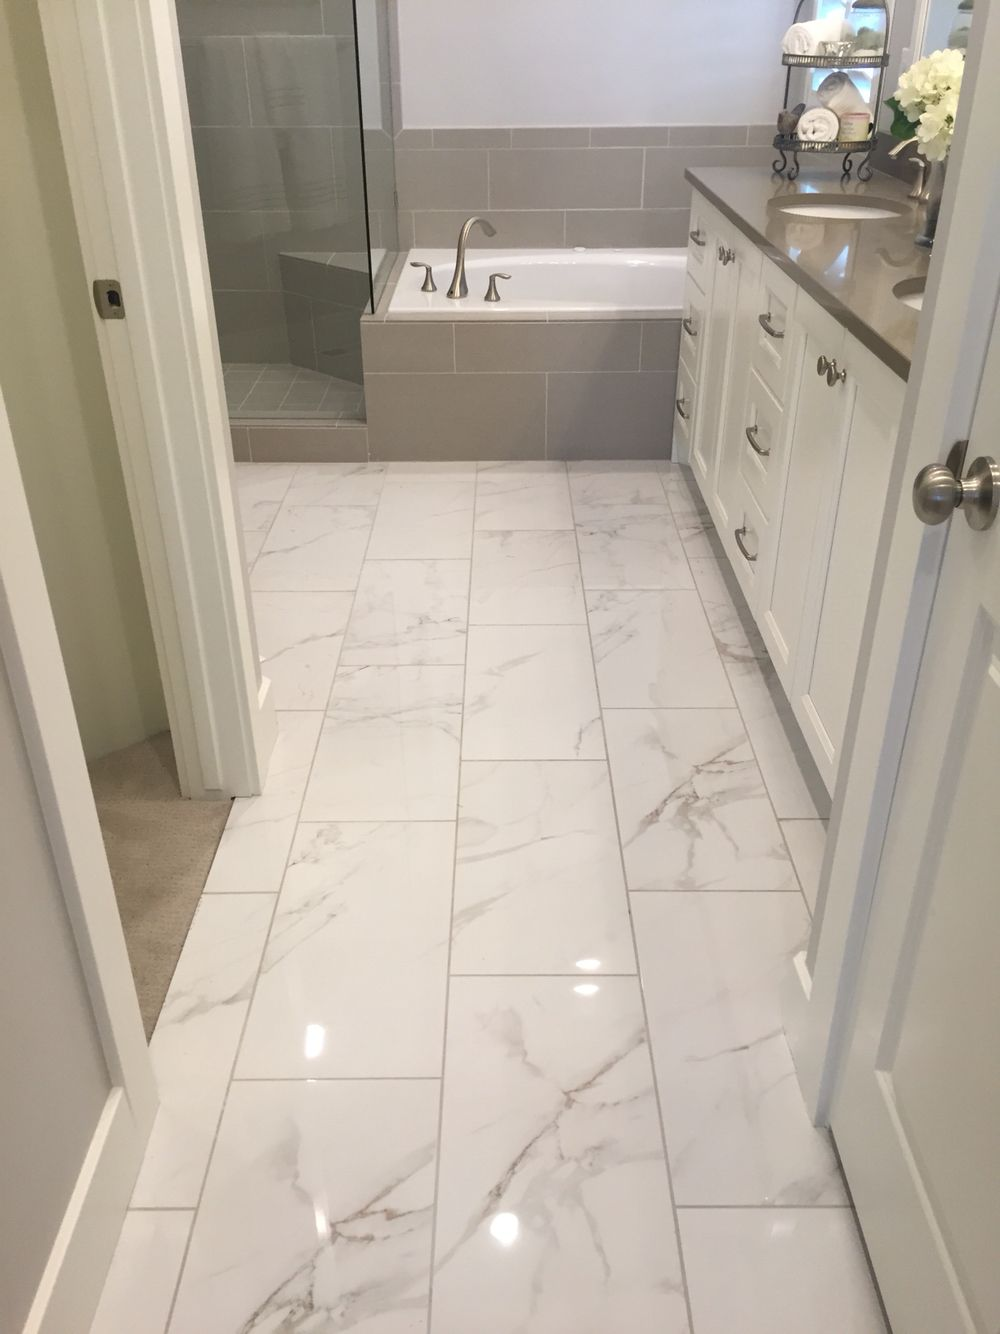 I Like Shiny Tile In 2019 Marble Tile Bathroom Kitchen